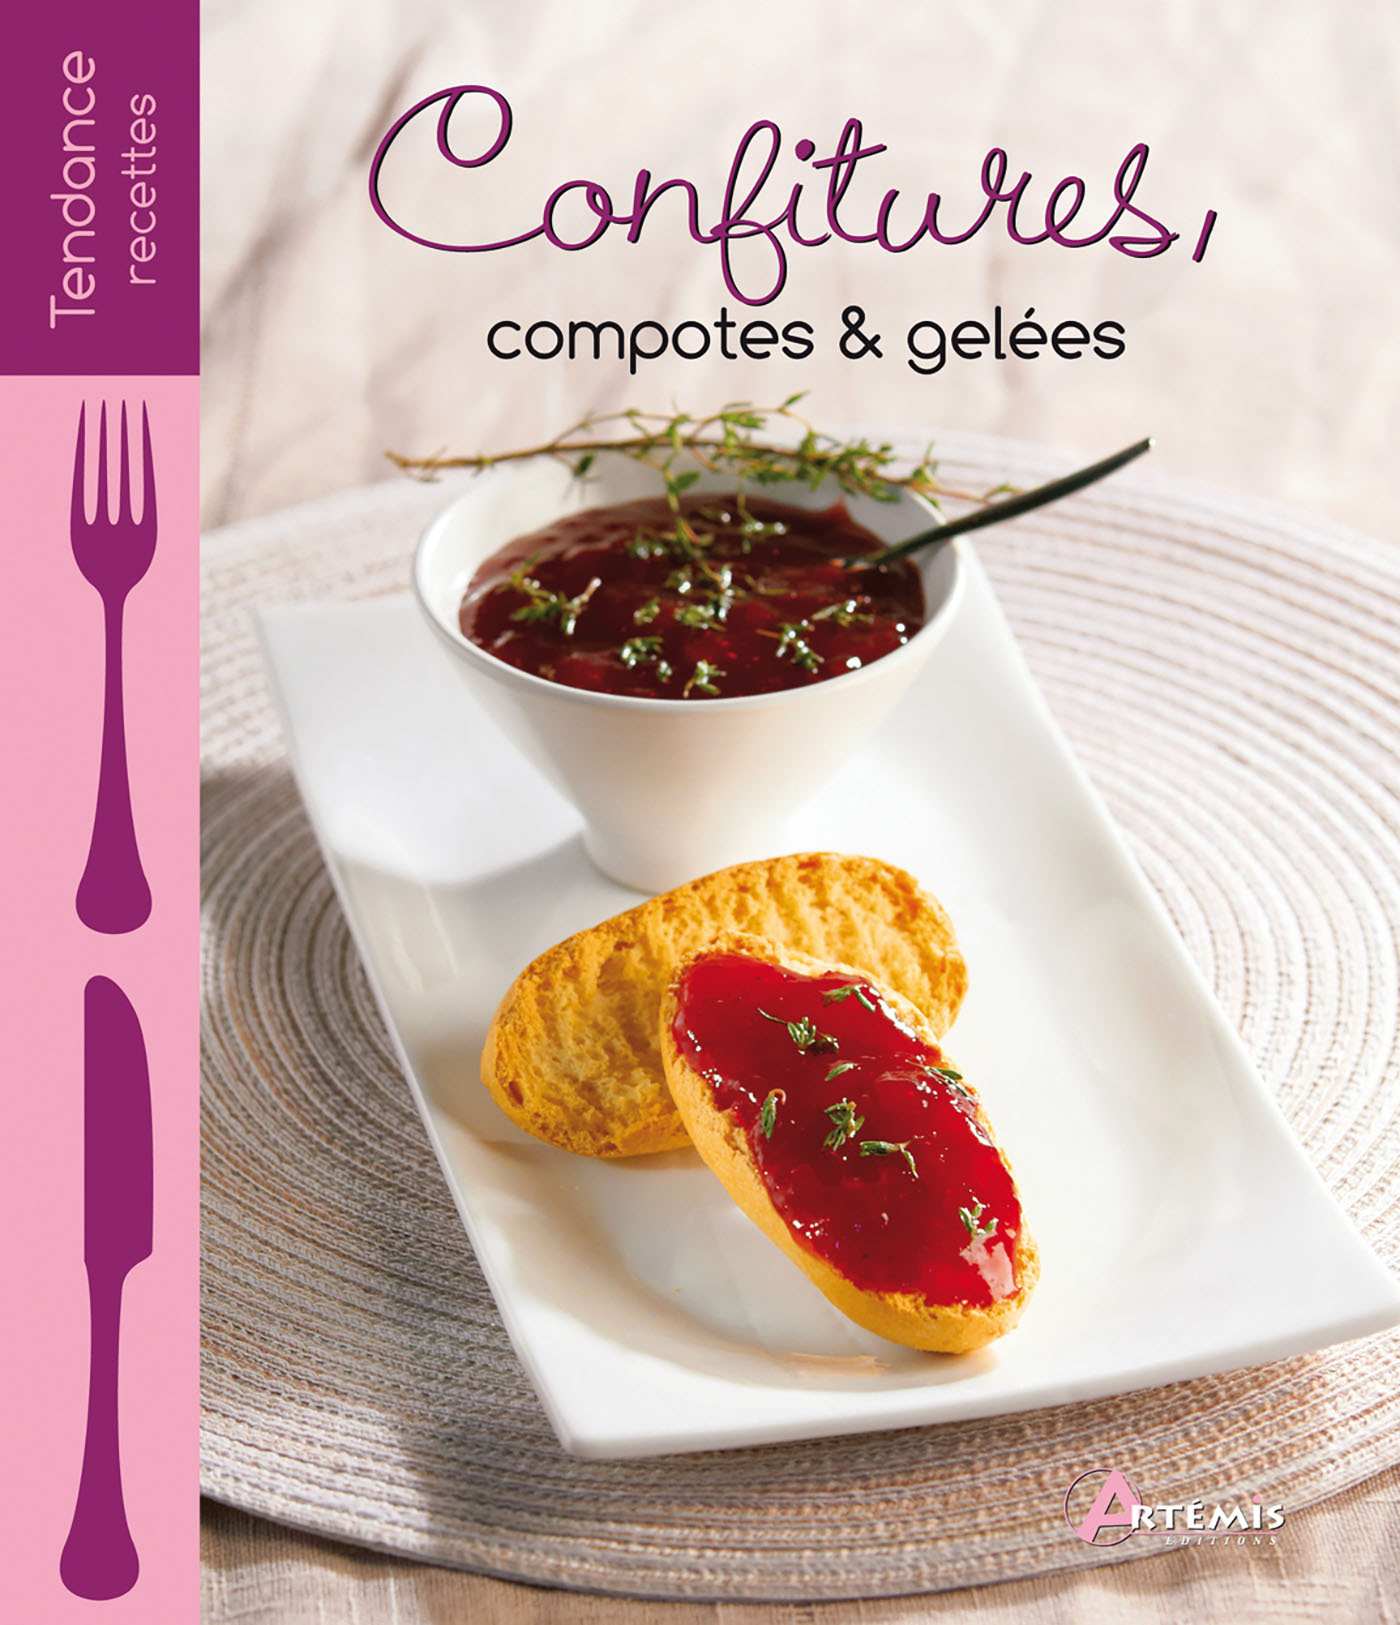 CONFITURES, COMPOTES & GELEES